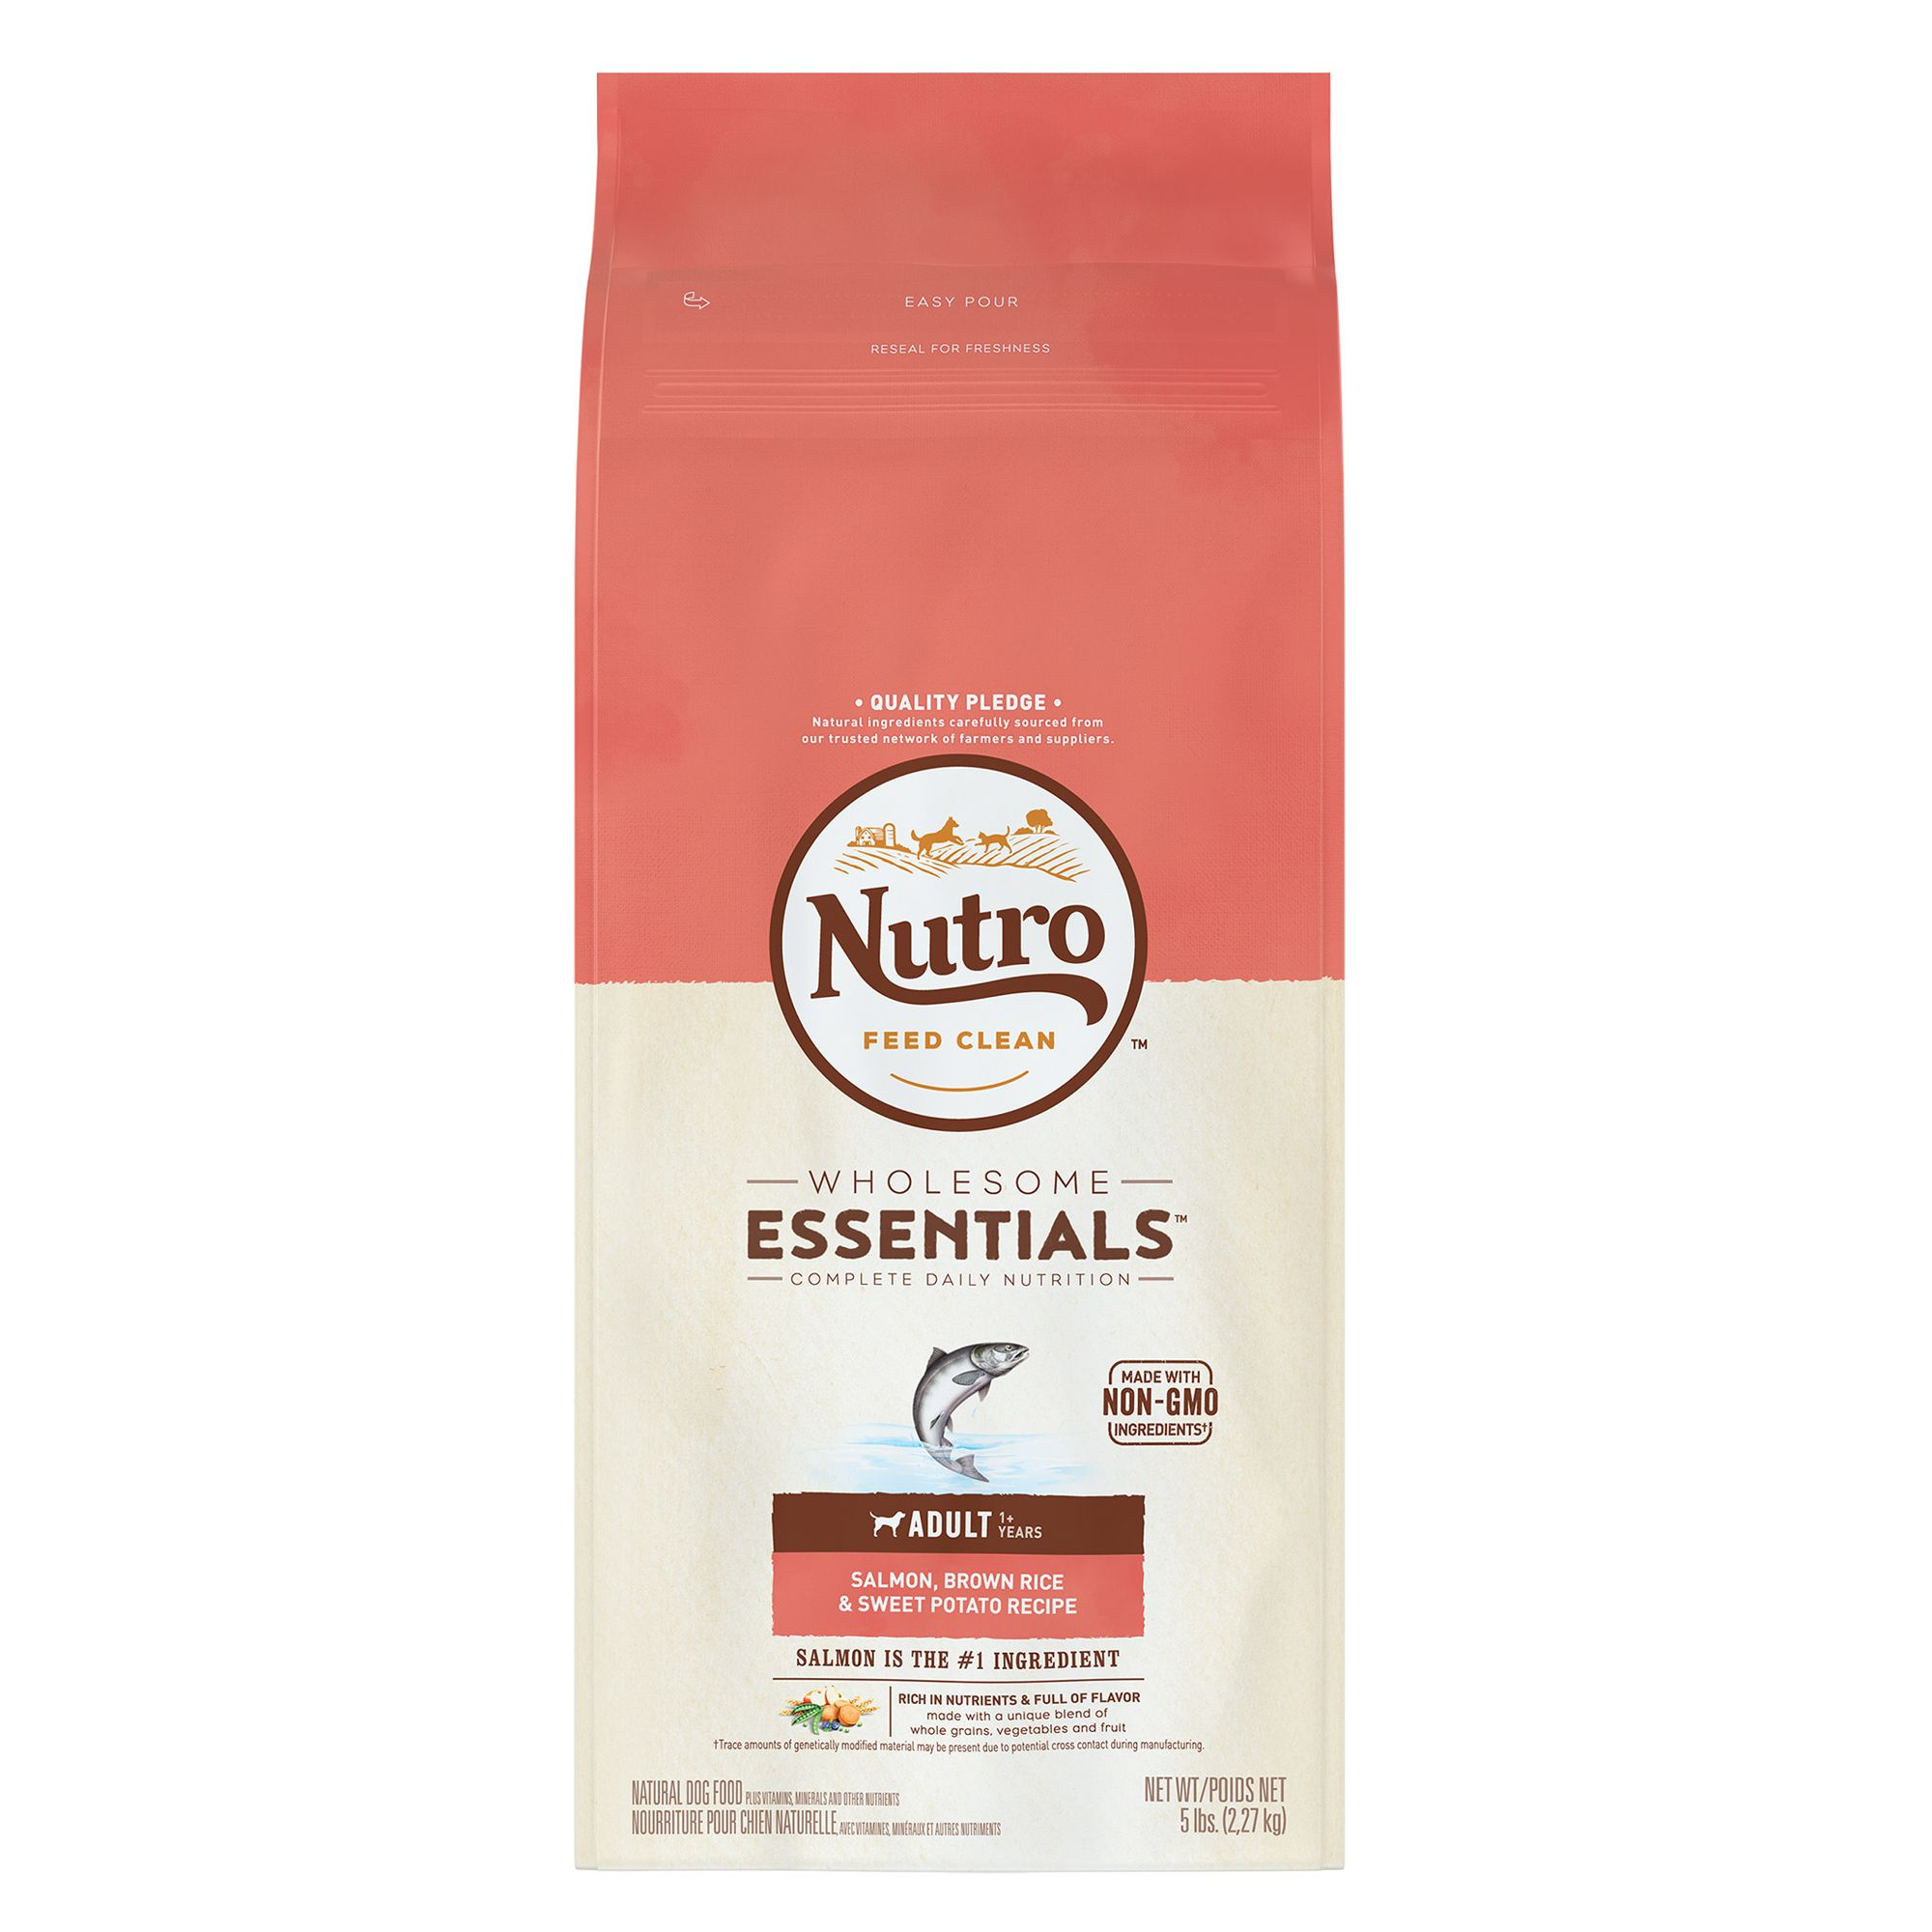 Nutro, Wholesome Essentials Adult Dog Food - Natural, Salmon, Brown Rice and Sweet Potato size: 5 Lb, Dry, (1-7 years) 5264083